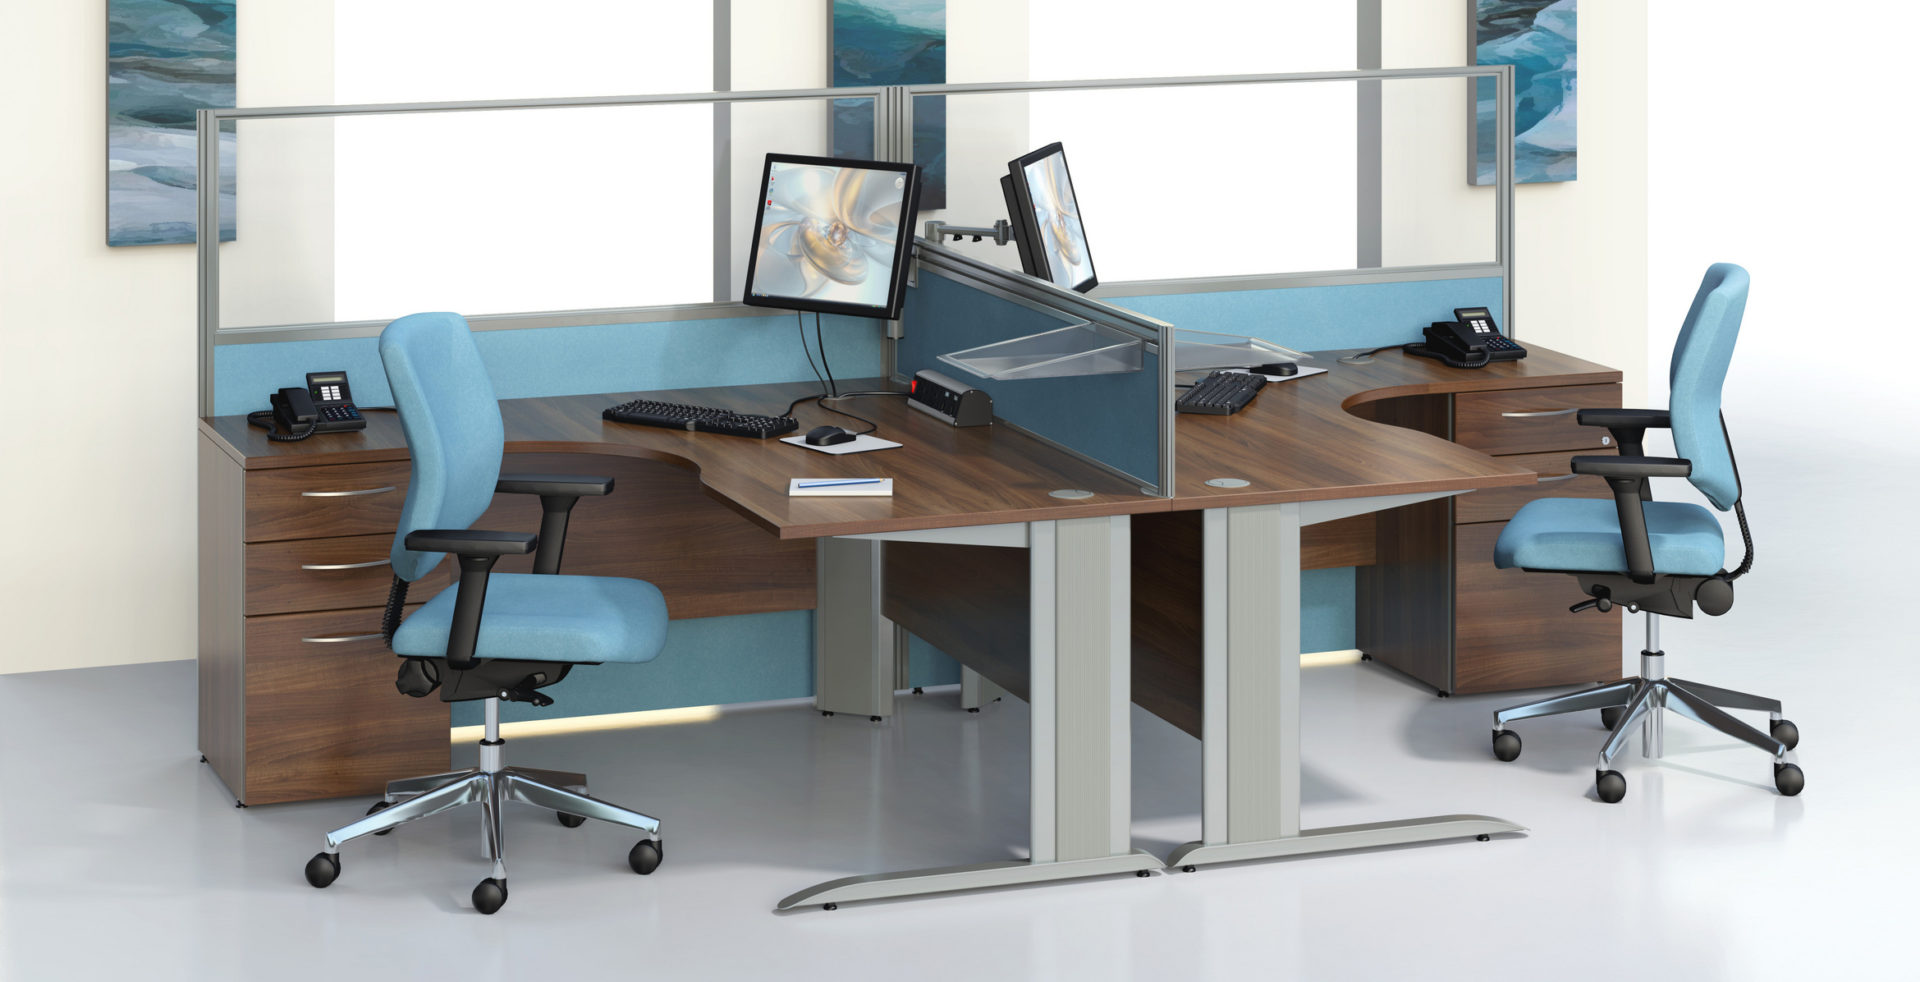 desks facing each other with blue chairs